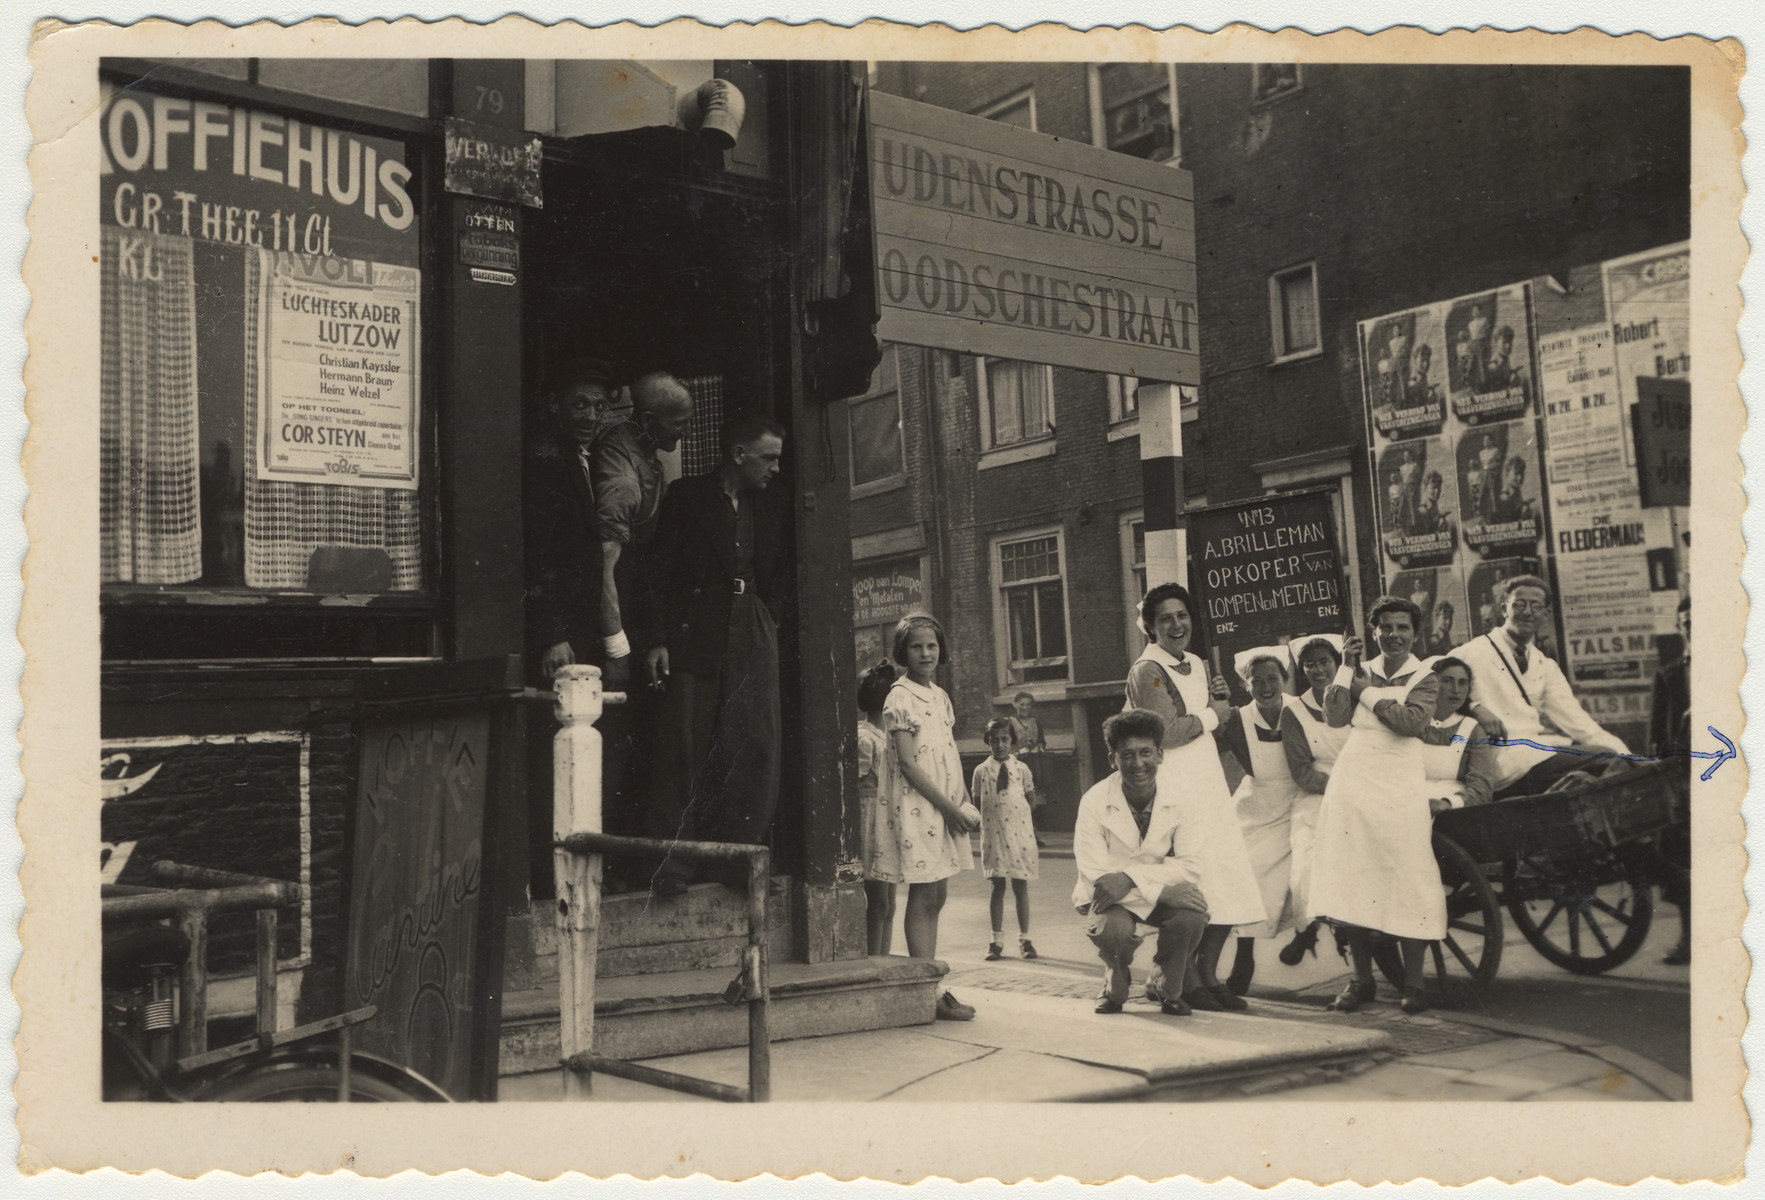 Jewish nurses and nursing students gather around a cart outside a coffee house on Judenstrasse.  Among those pictured is Edith van Dam.